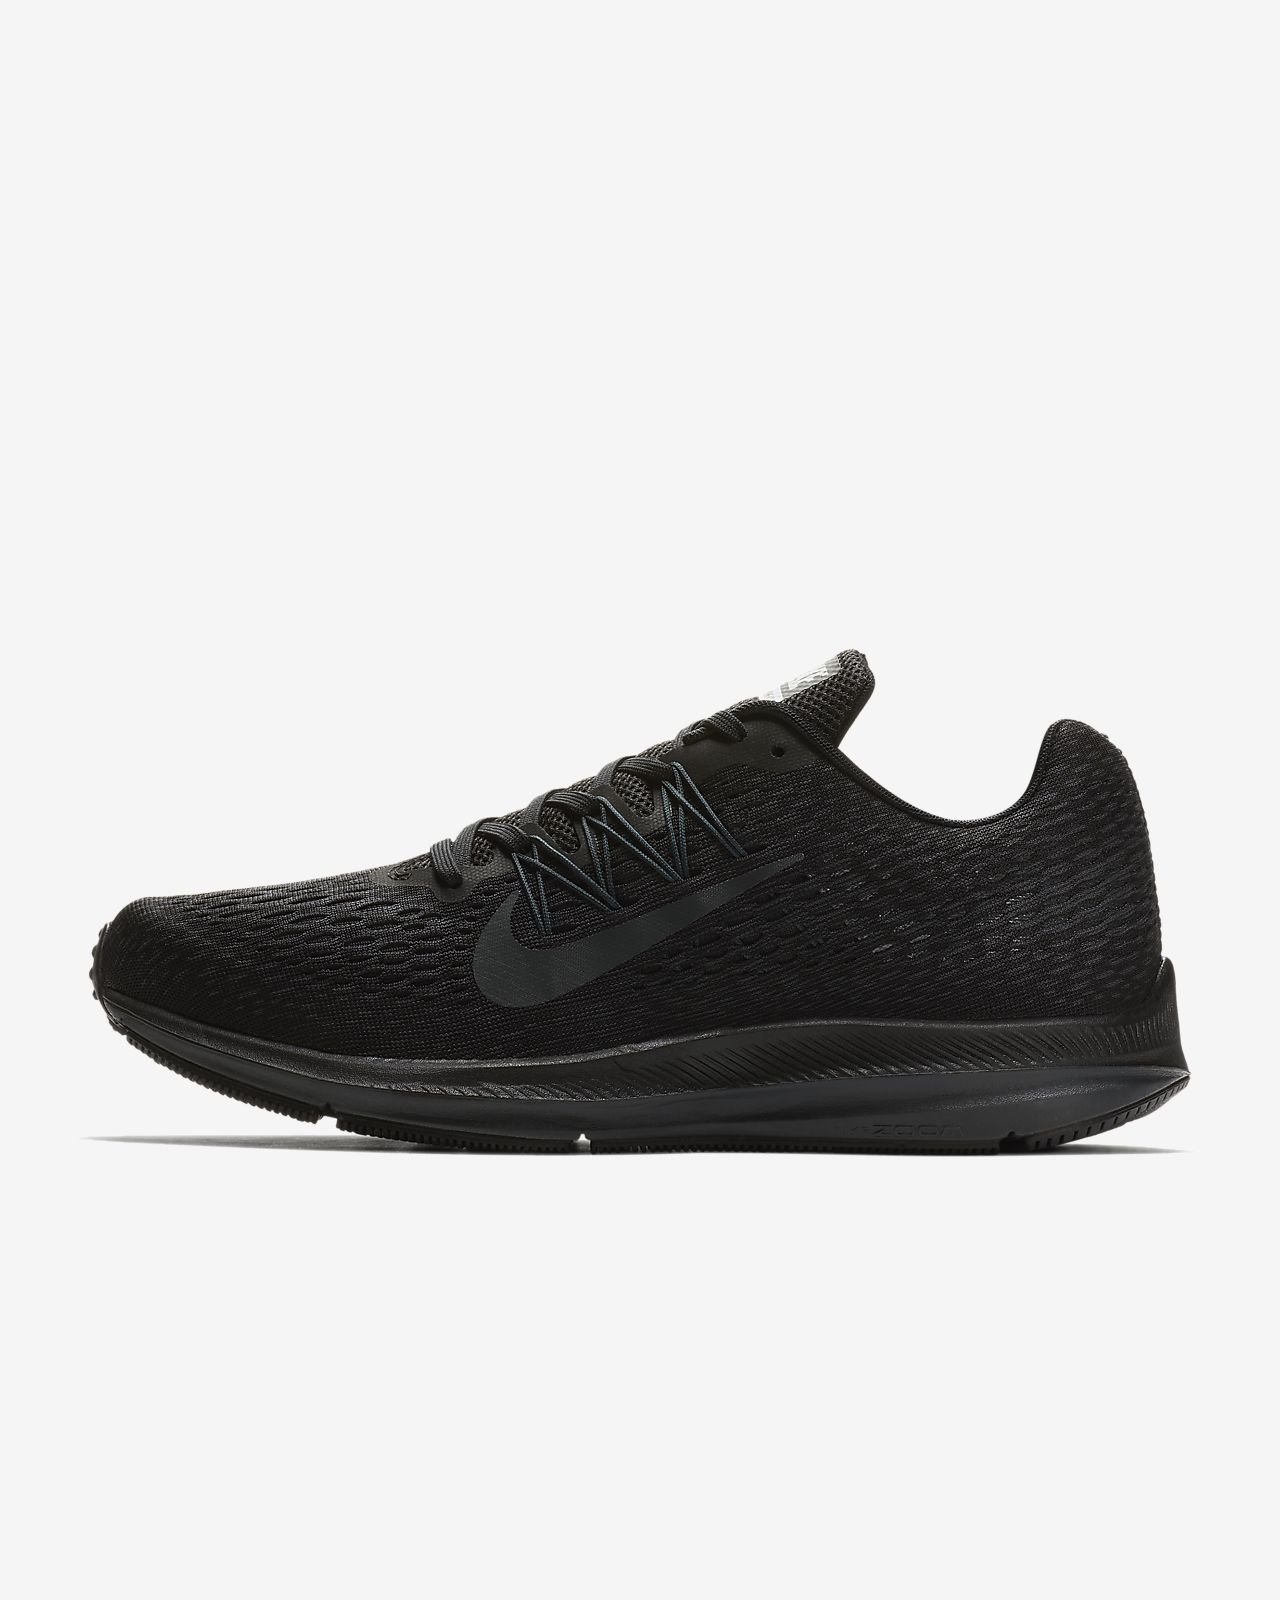 Nike Air Zoom Winflo 5 Men's Running Shoe